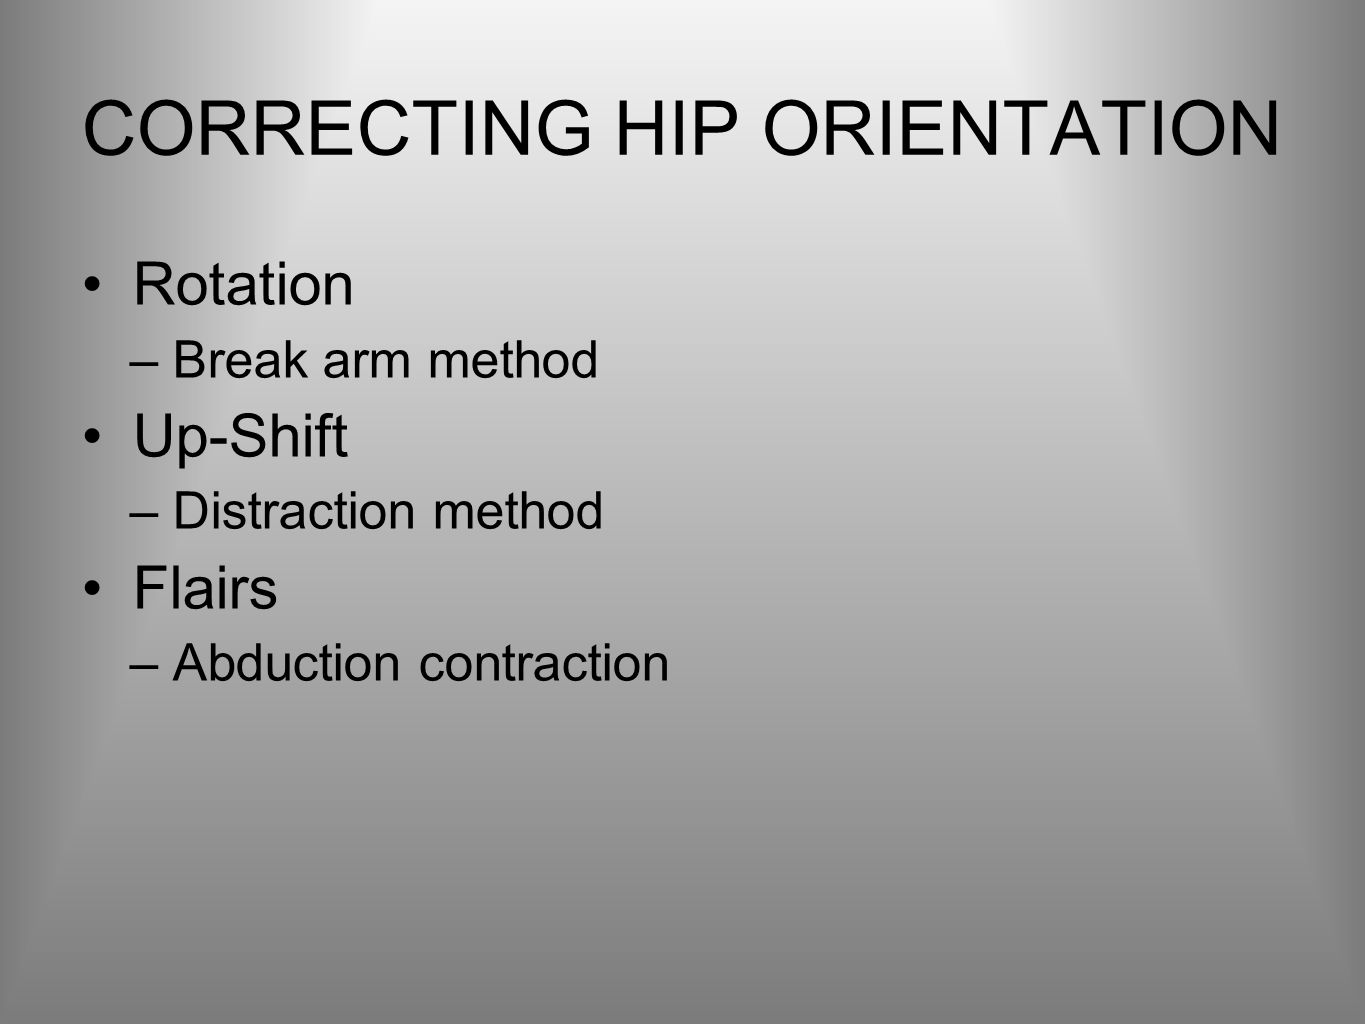 CORRECTING HIP ORIENTATION Rotation –Break arm method Up-Shift –Distraction method Flairs –Abduction contraction